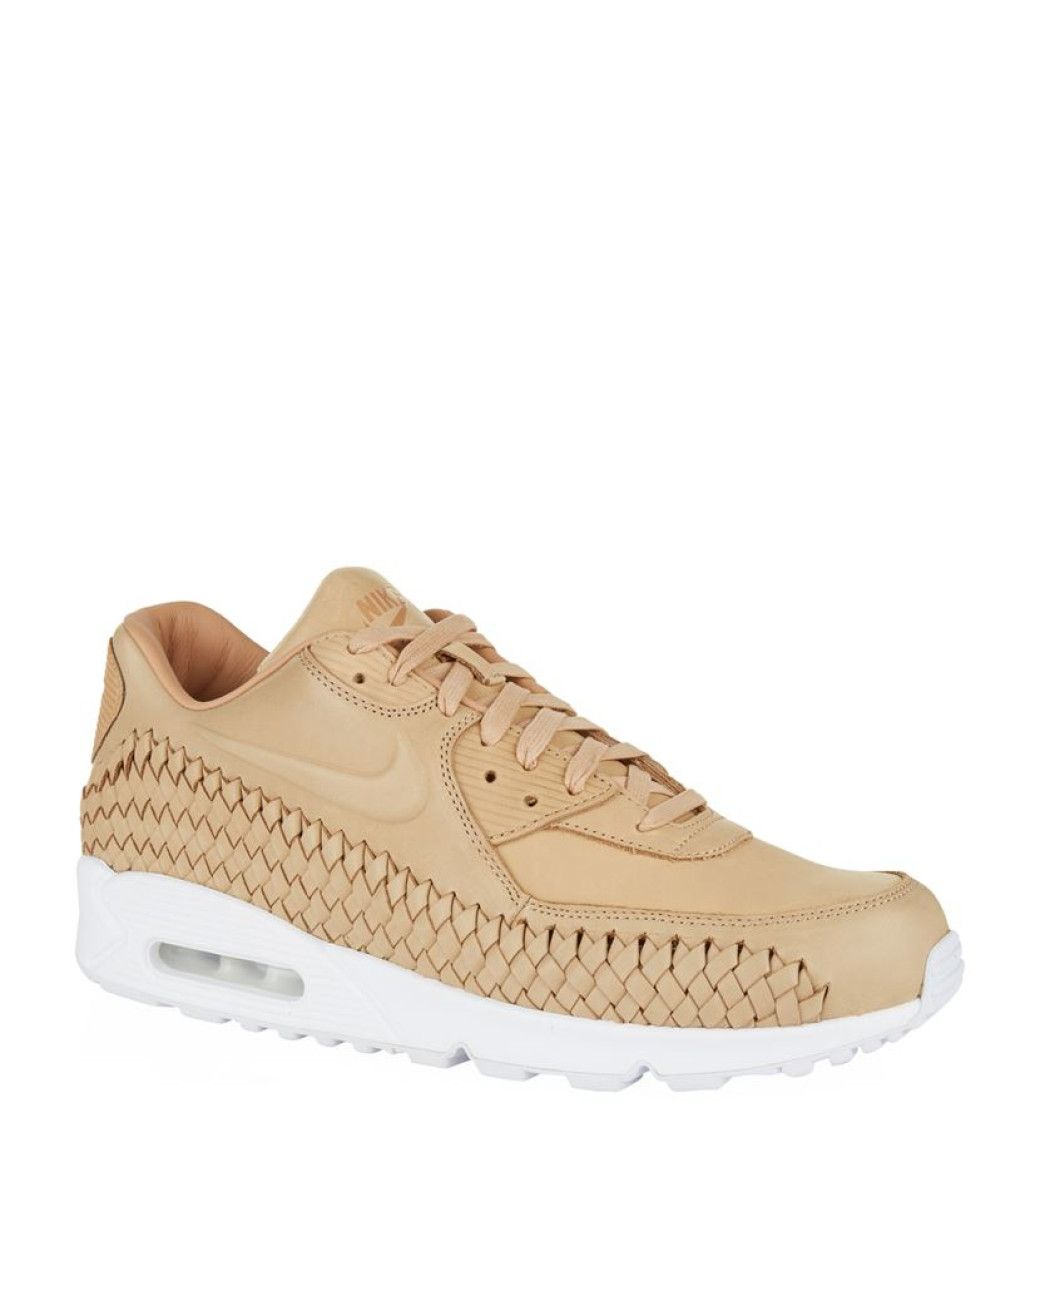 d2179793a7 Nike | Beige Woven Air Max 90 for Men | Lyst | S.N.E.A.K.S ...